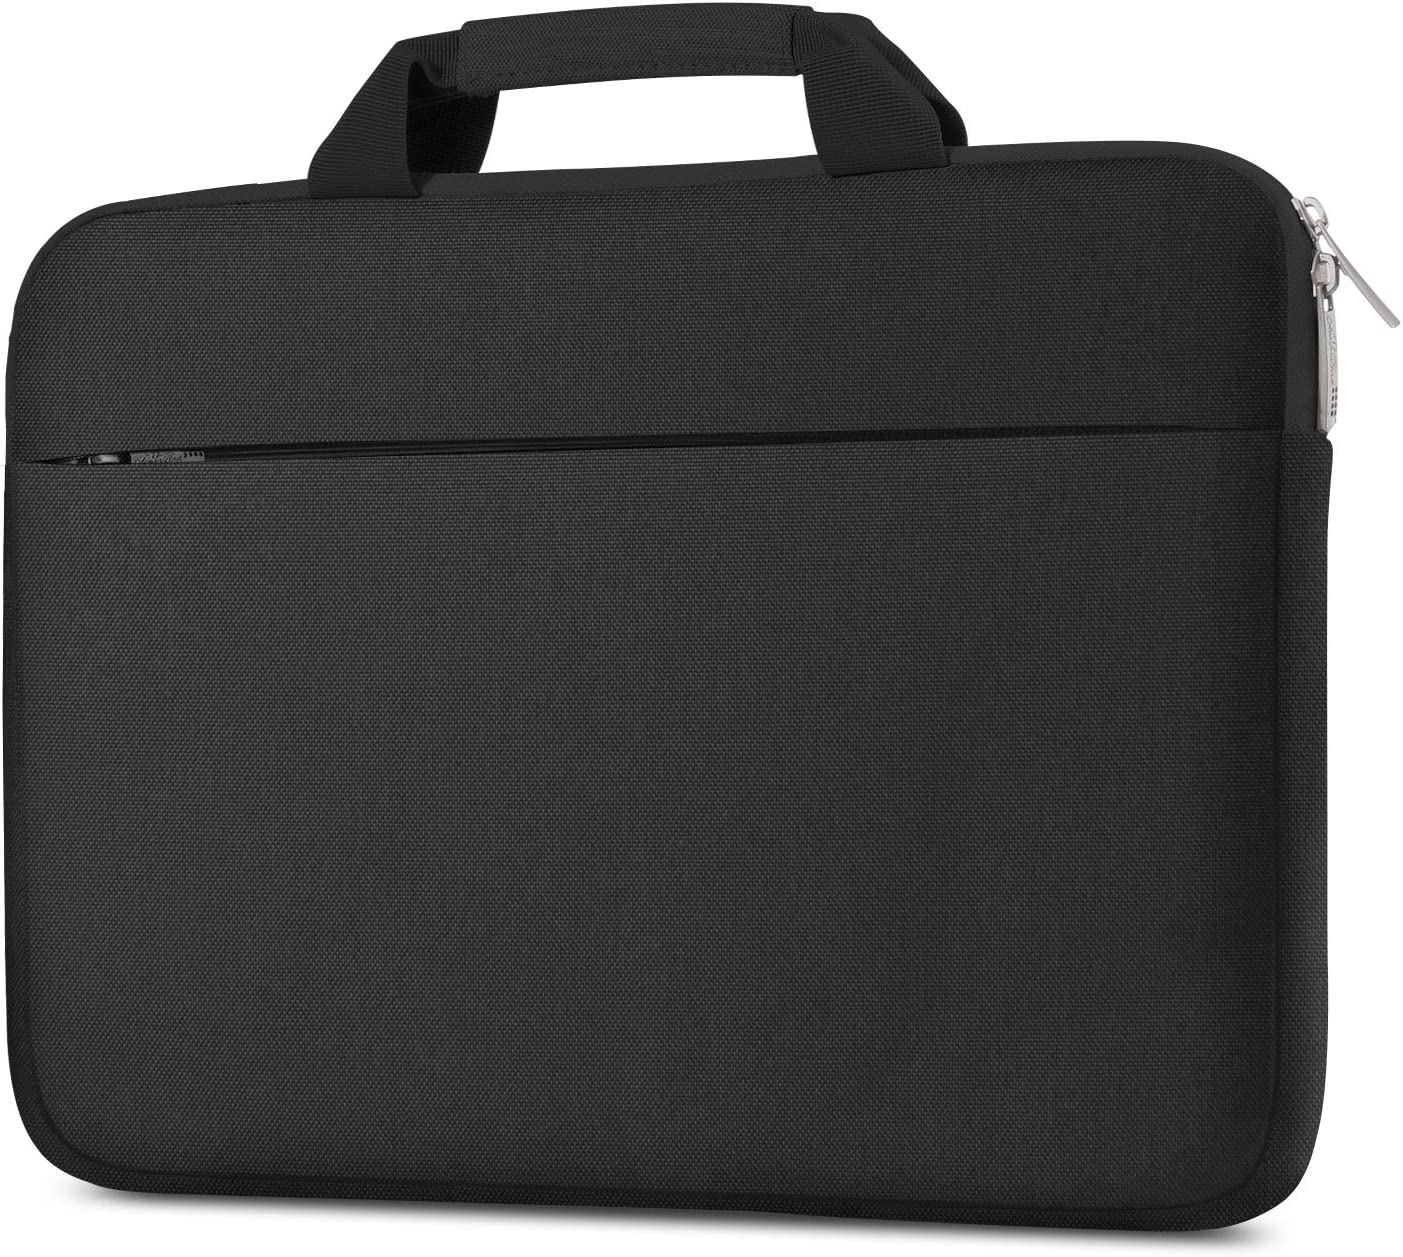 AtailorBird 15.6 Inch Laptop Sleeve, Portable Handle Briefcase Shockproof Bag Slim and Lightweight Notebook Protective Carrying Case, Black